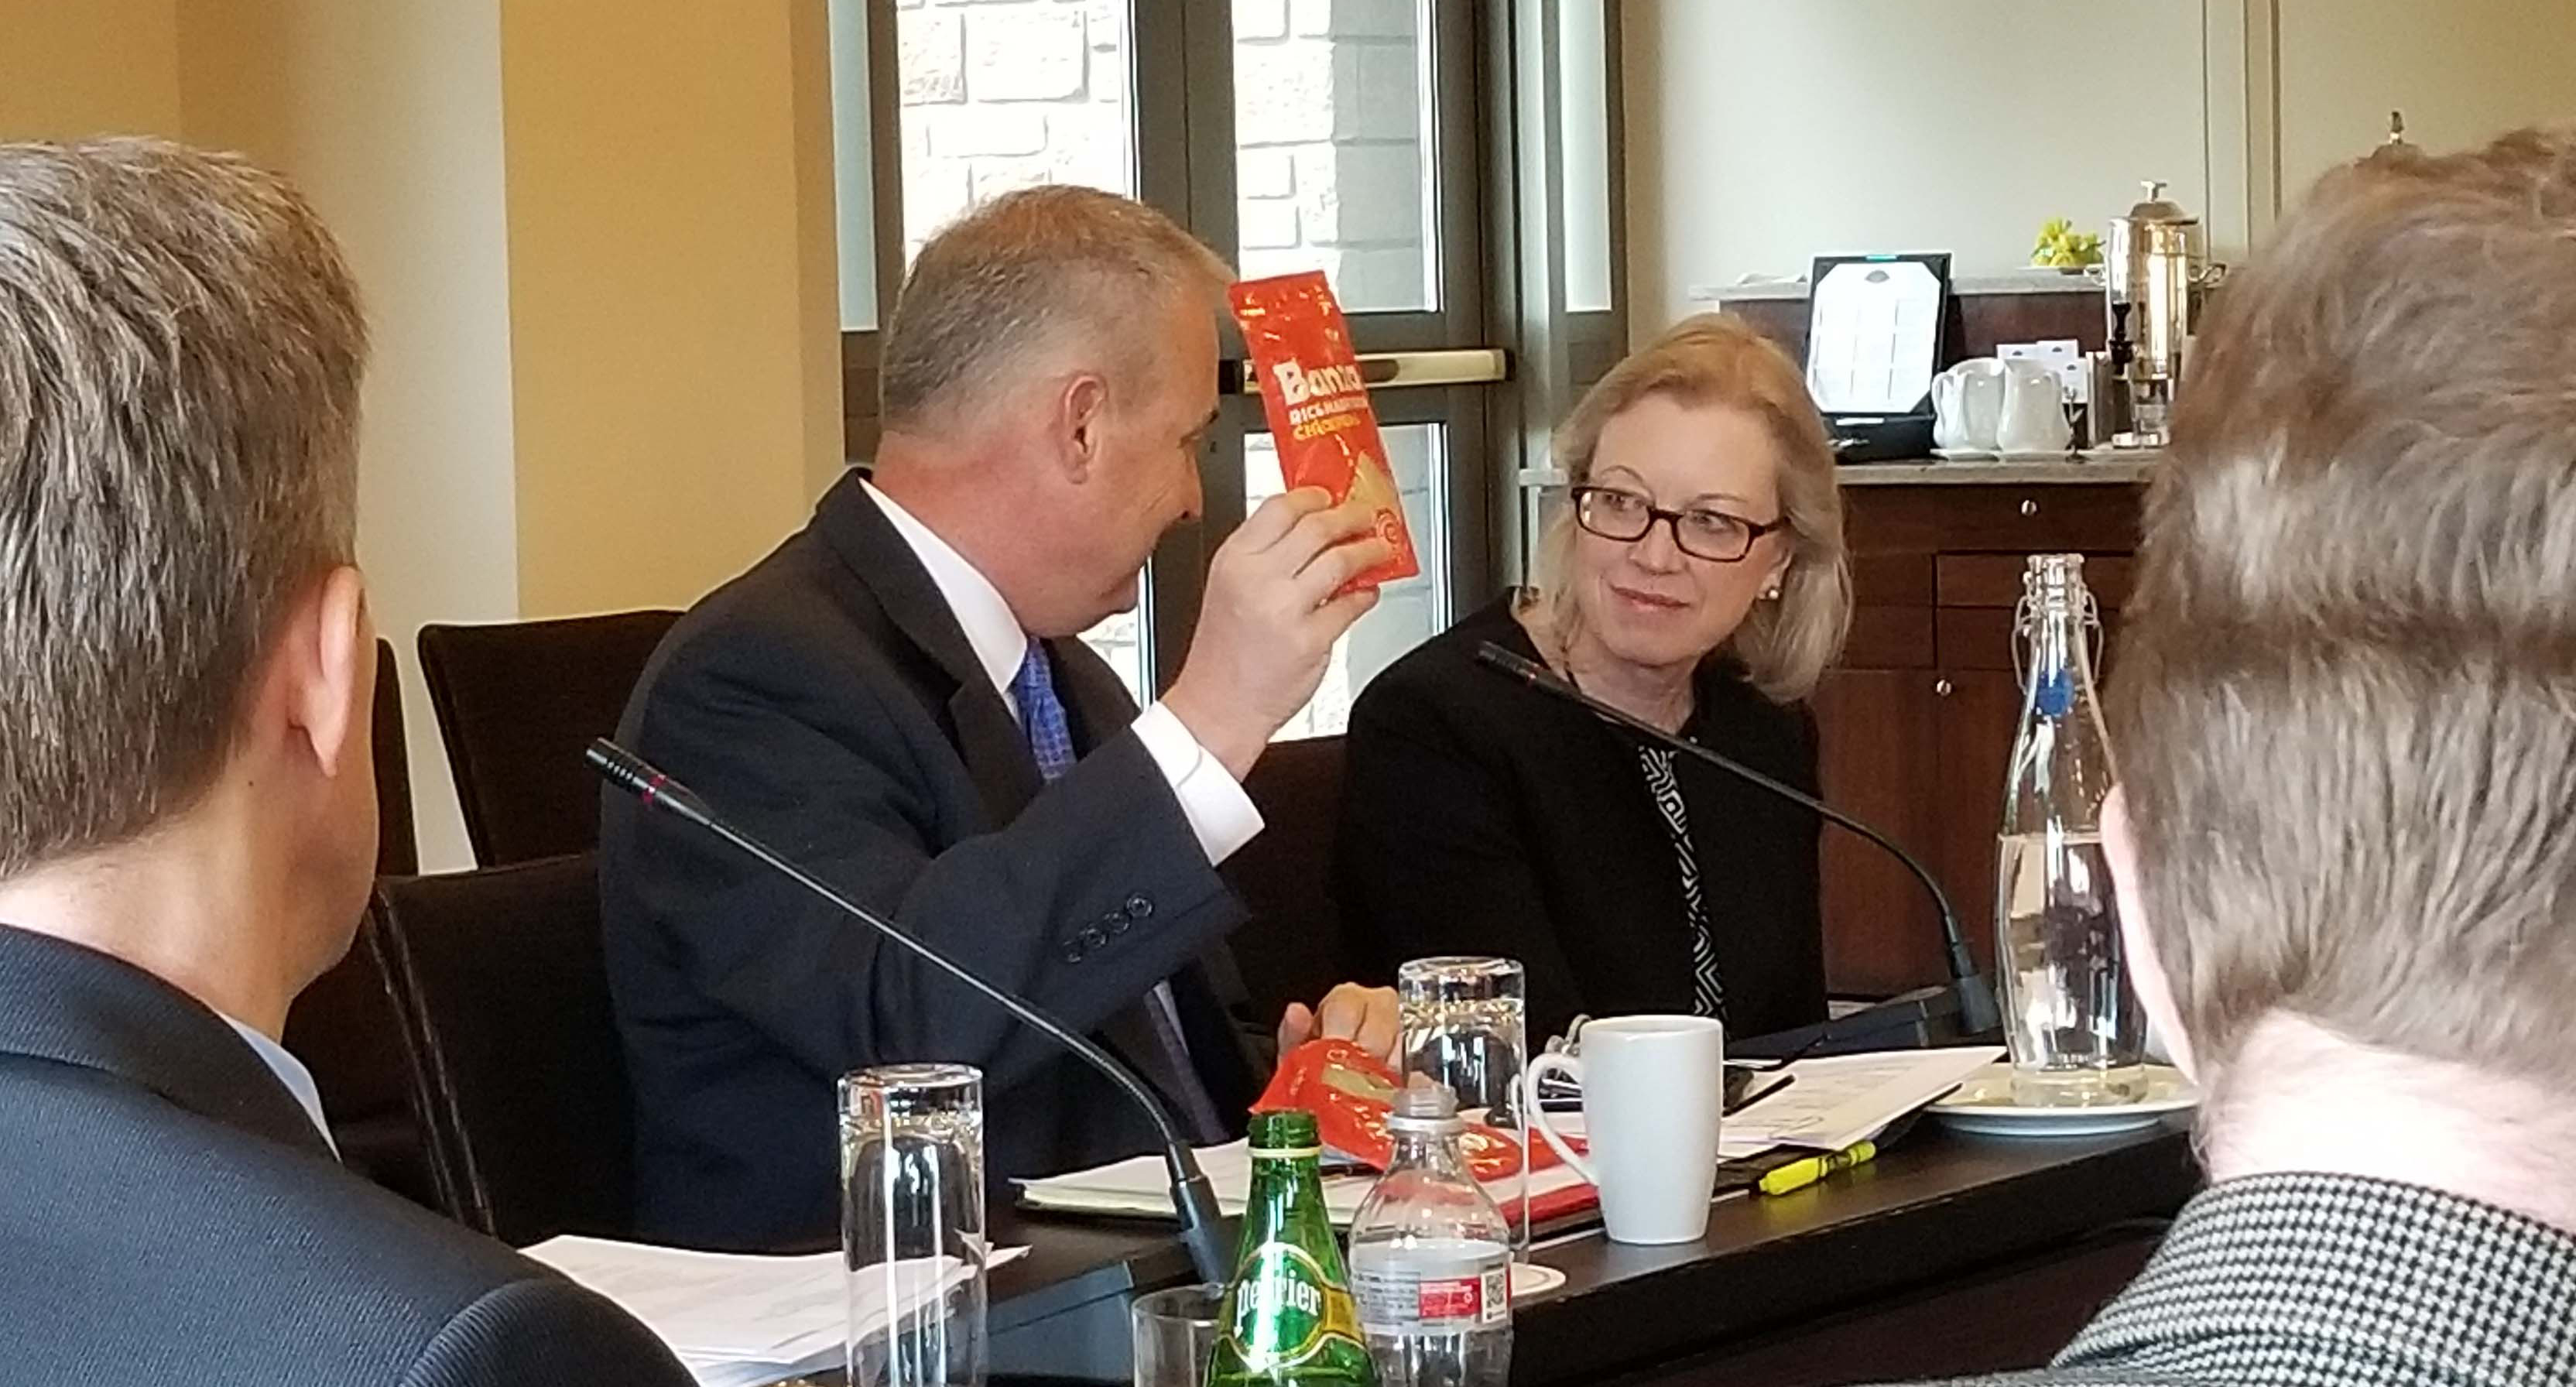 At a business meeting a man holds up a small, orange package while a woman wearing glasses smiles at him